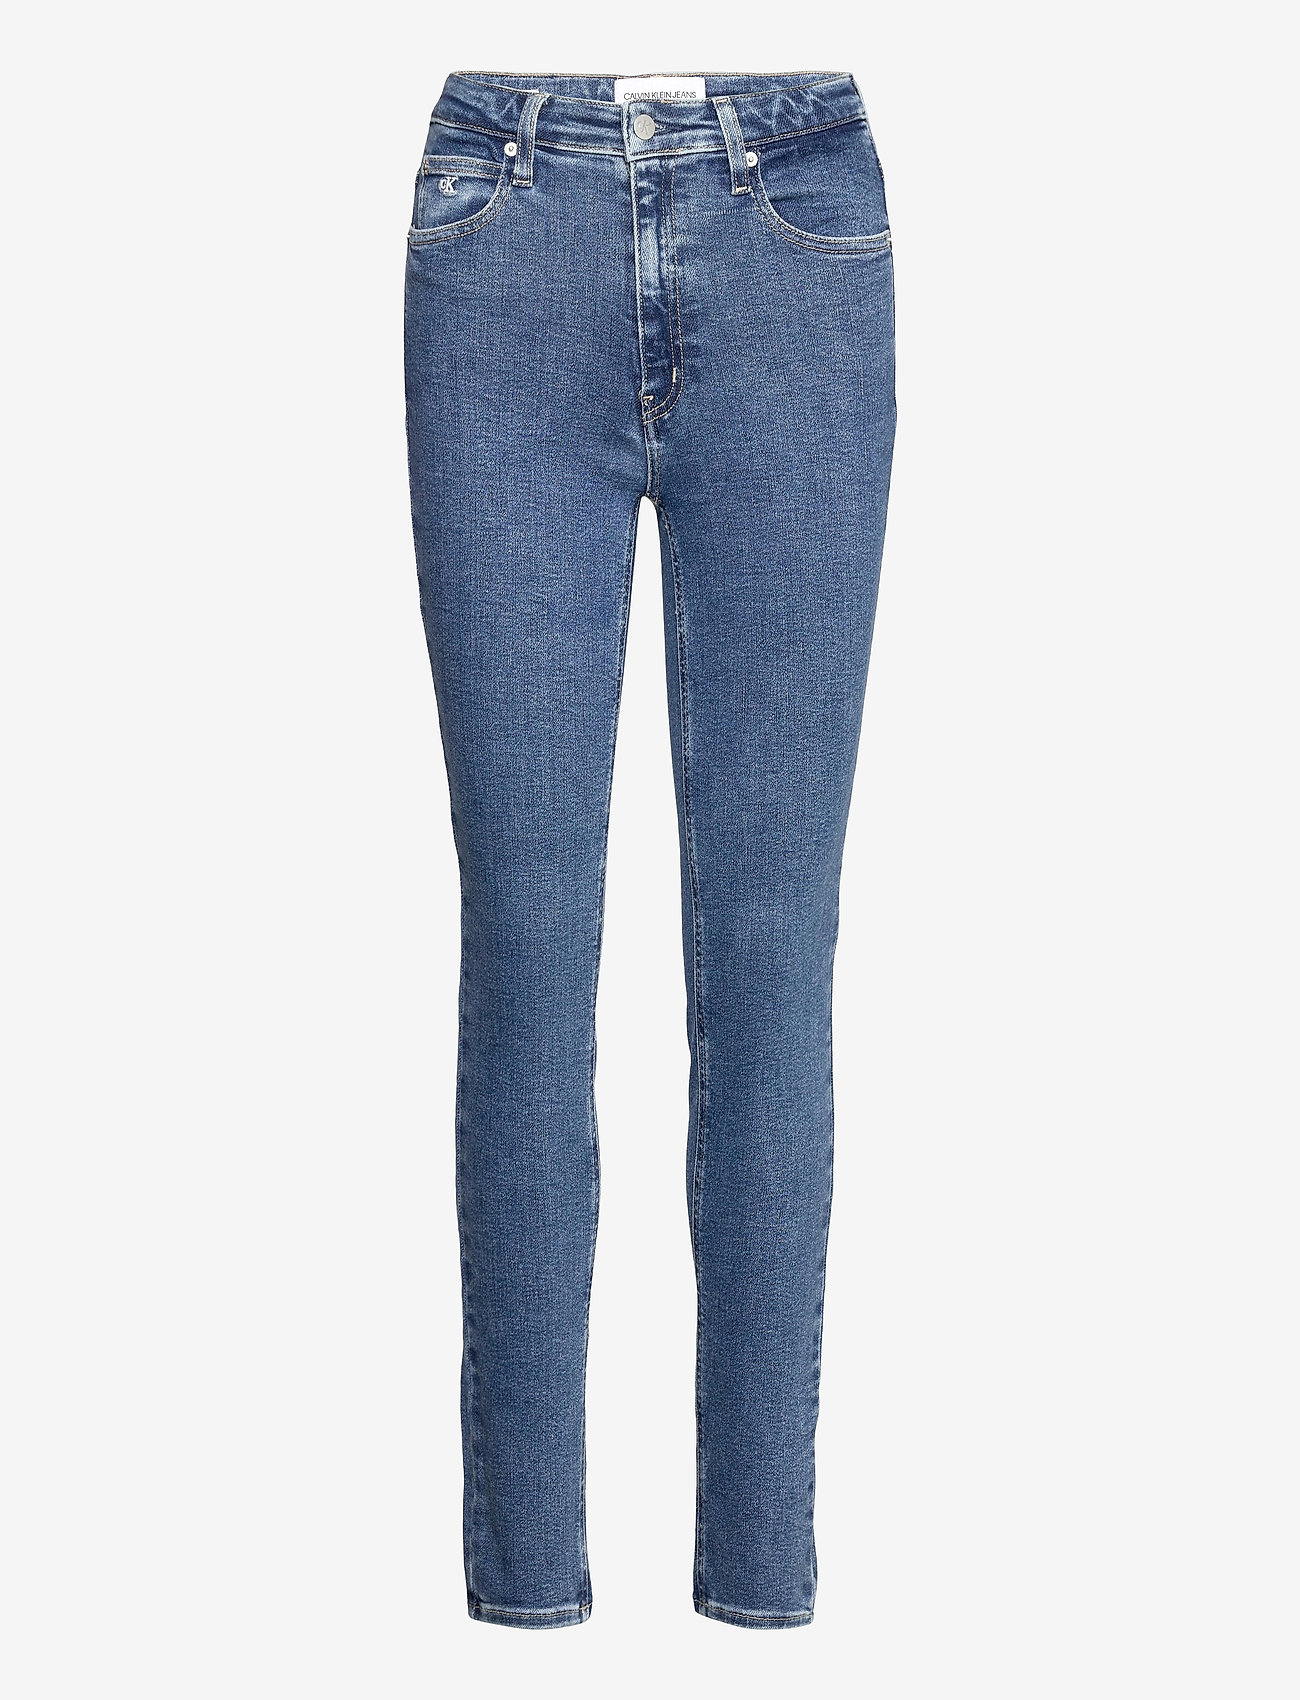 Calvin Klein Jeans - HIGH RISE SKINNY - skinny jeans - denim medium - 0